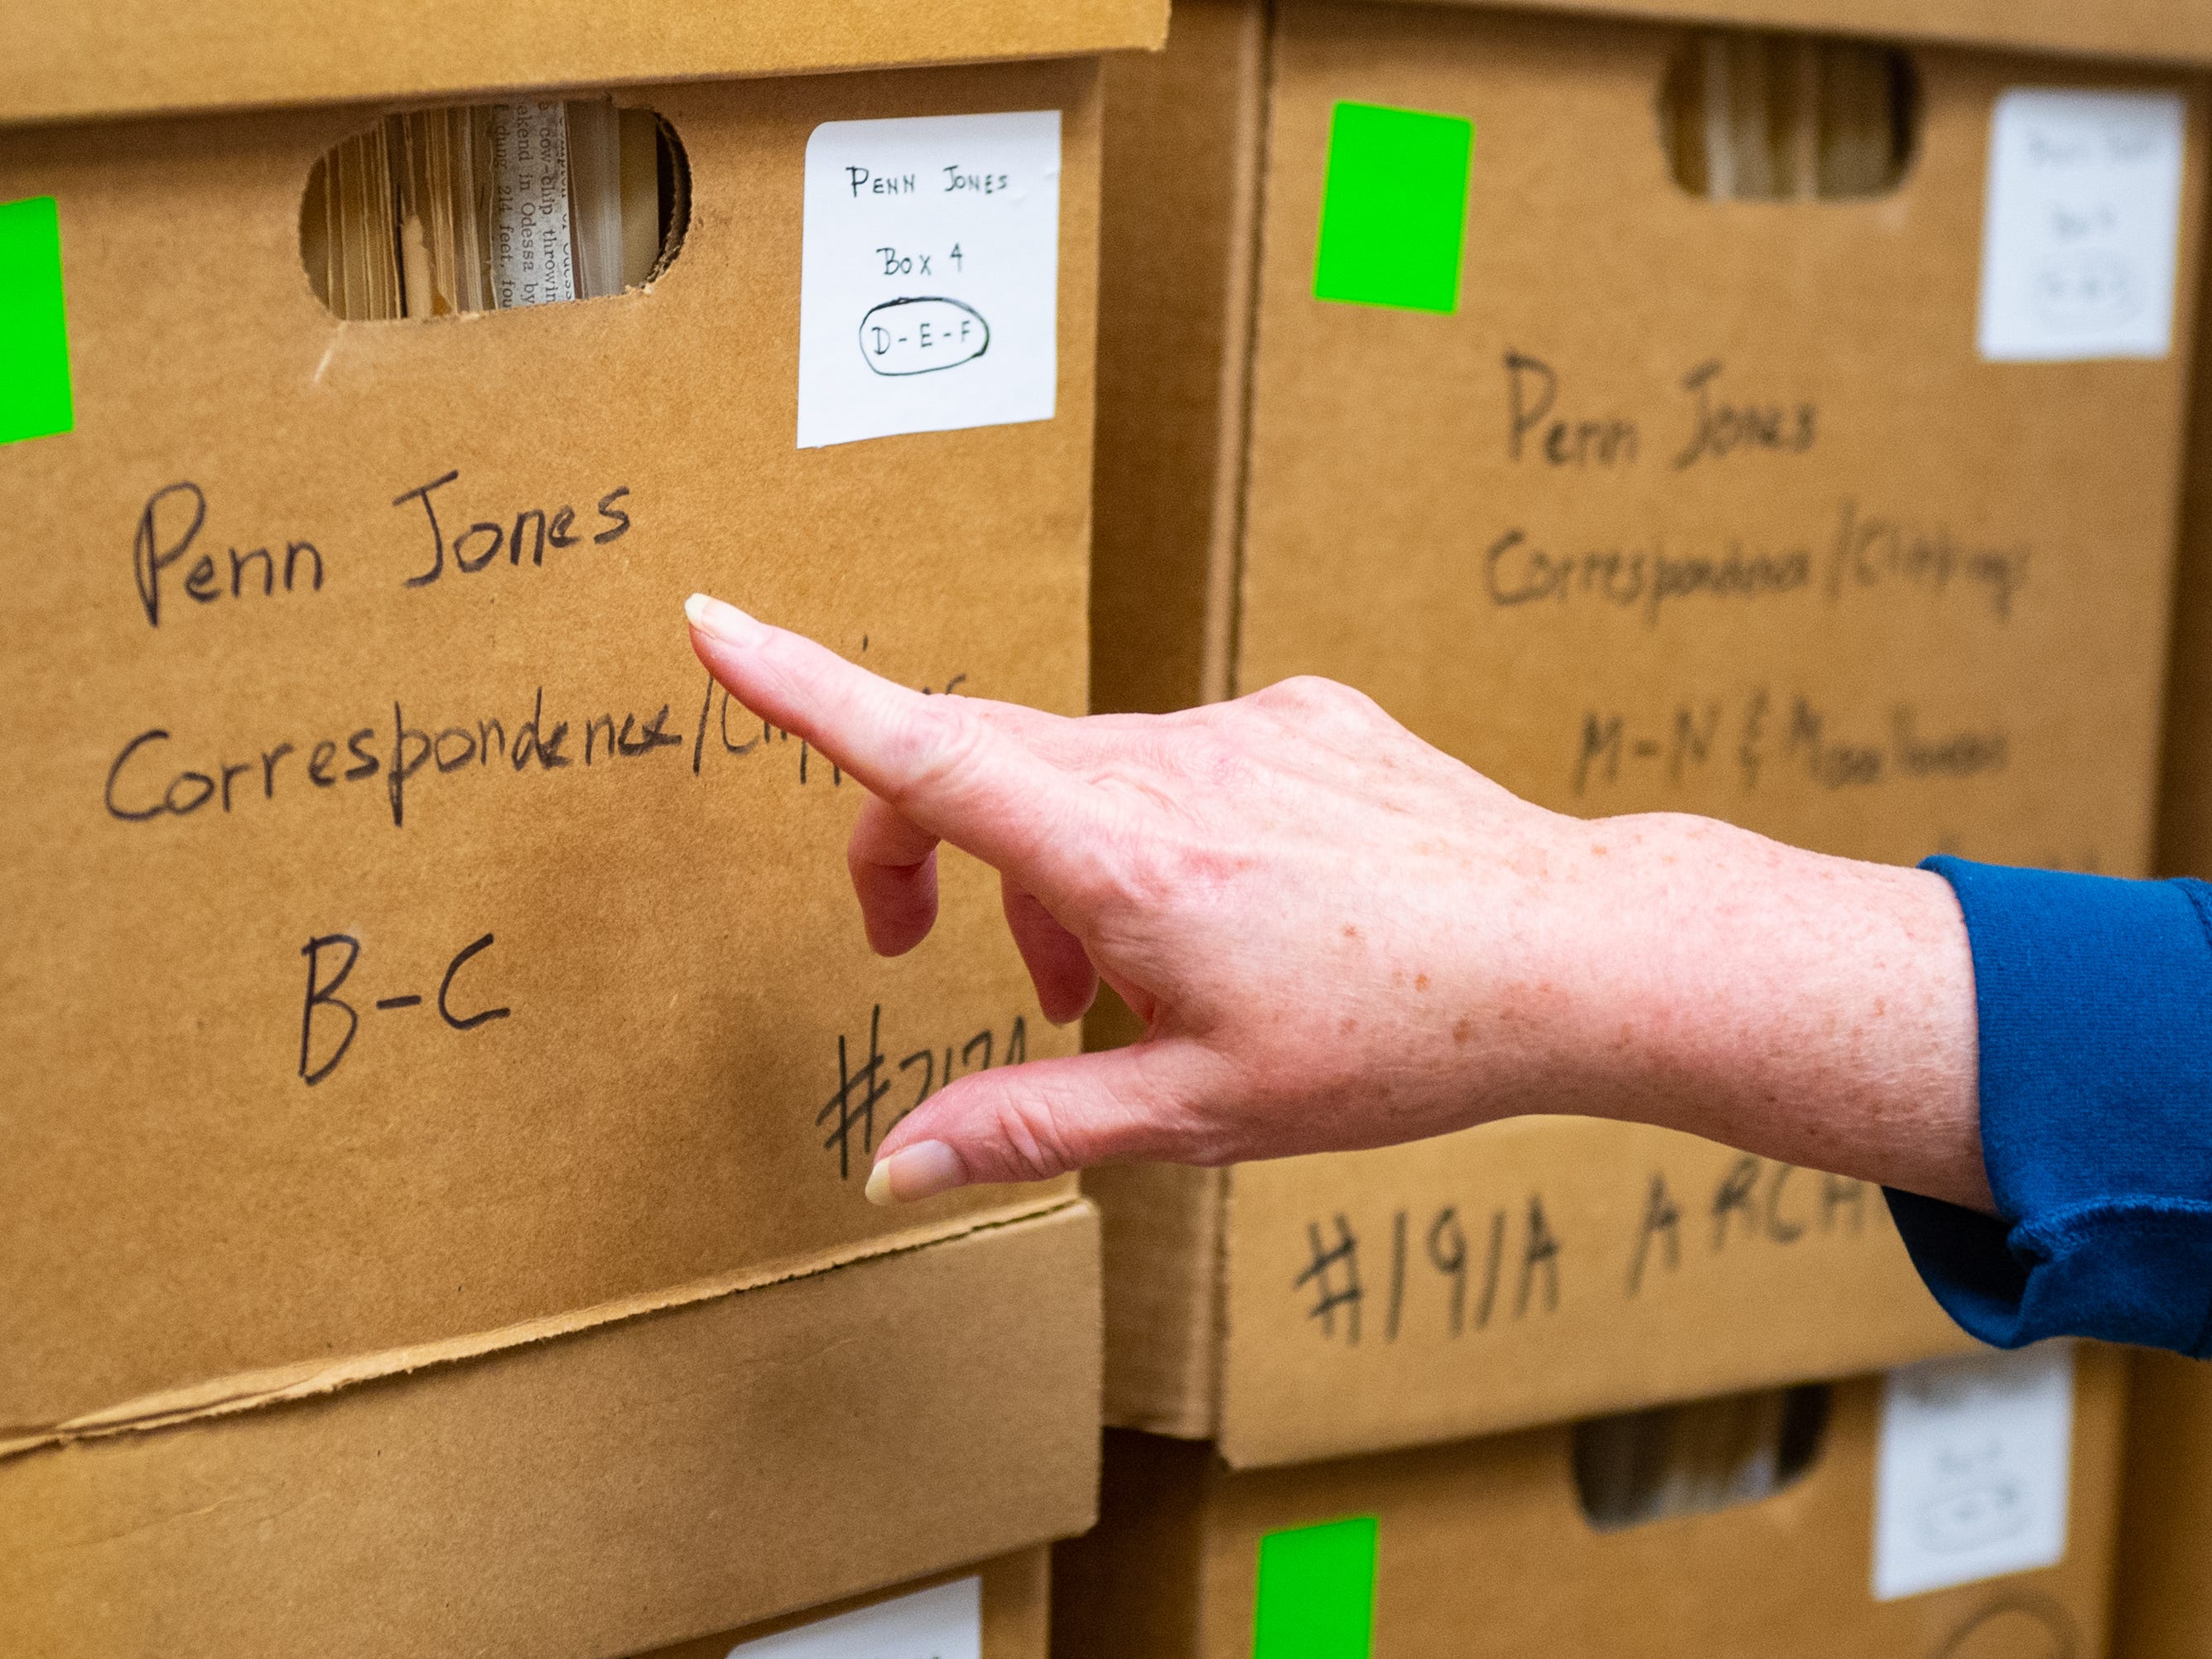 The Hidden History Museum and Research Center has a series of boxes dedicated to journalists like Penn Jones, January 12, 2019.